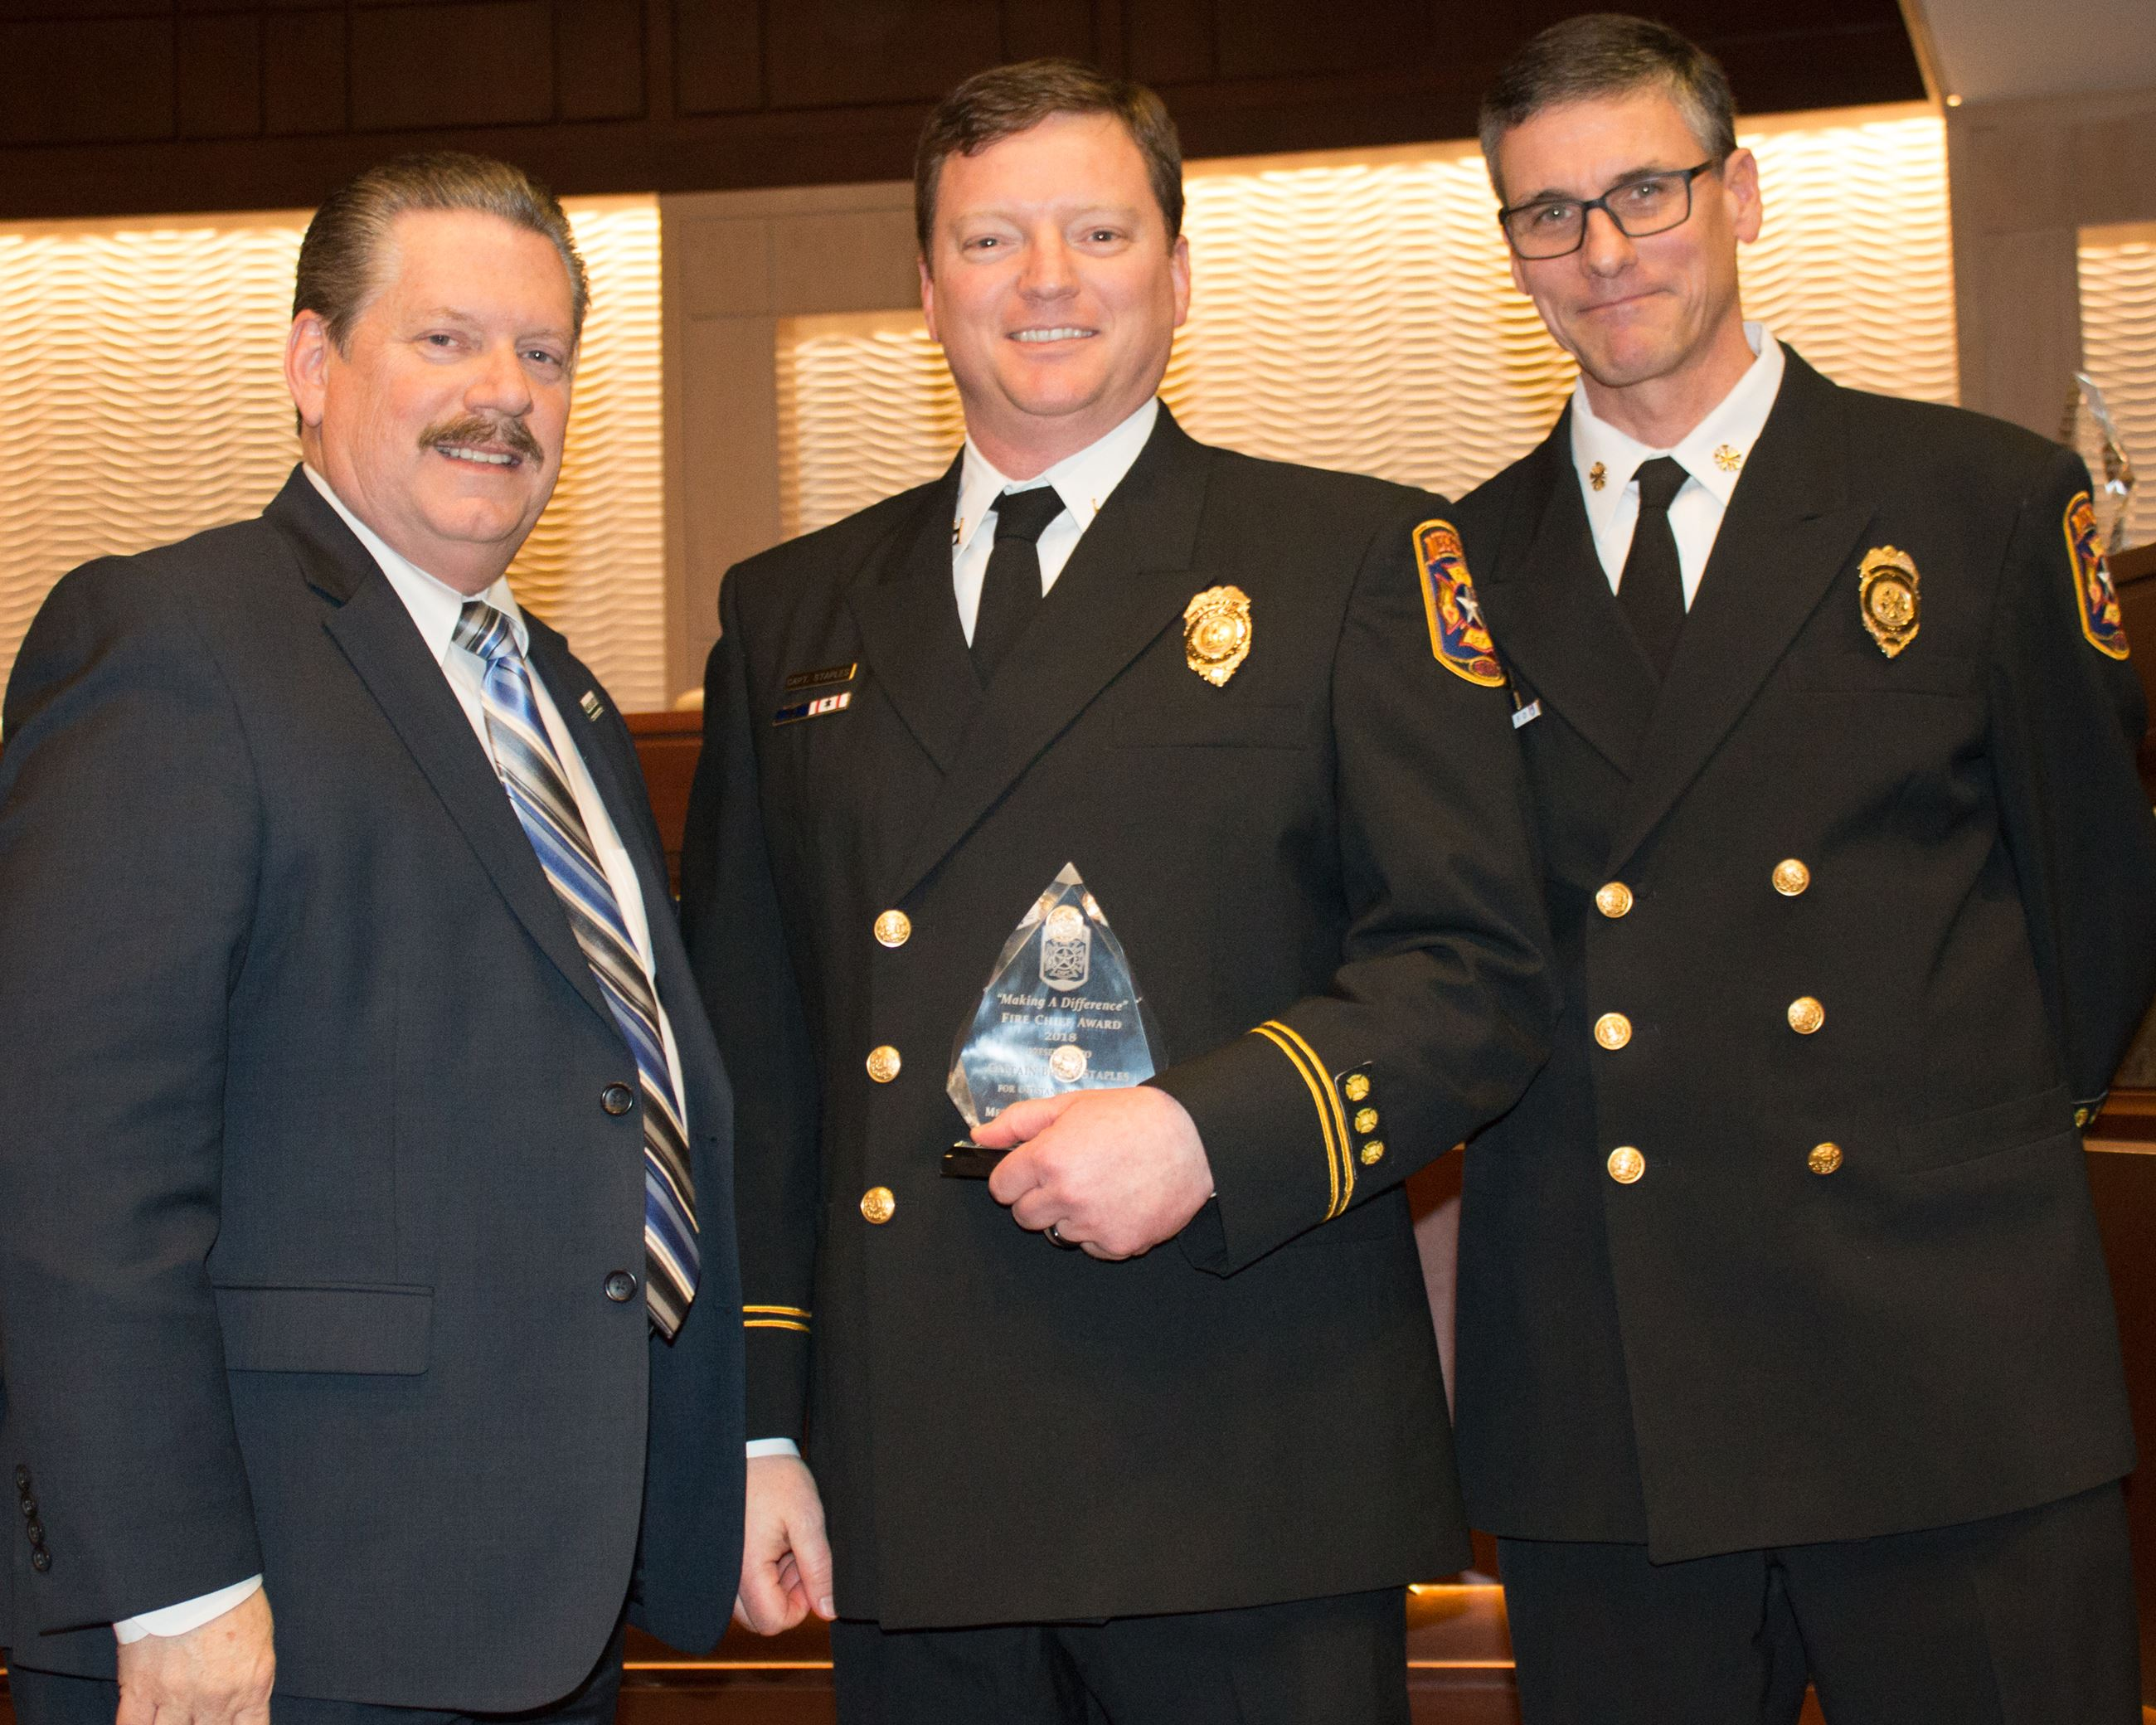 2018 Fire Chiefs Award - Capt Brian Staples